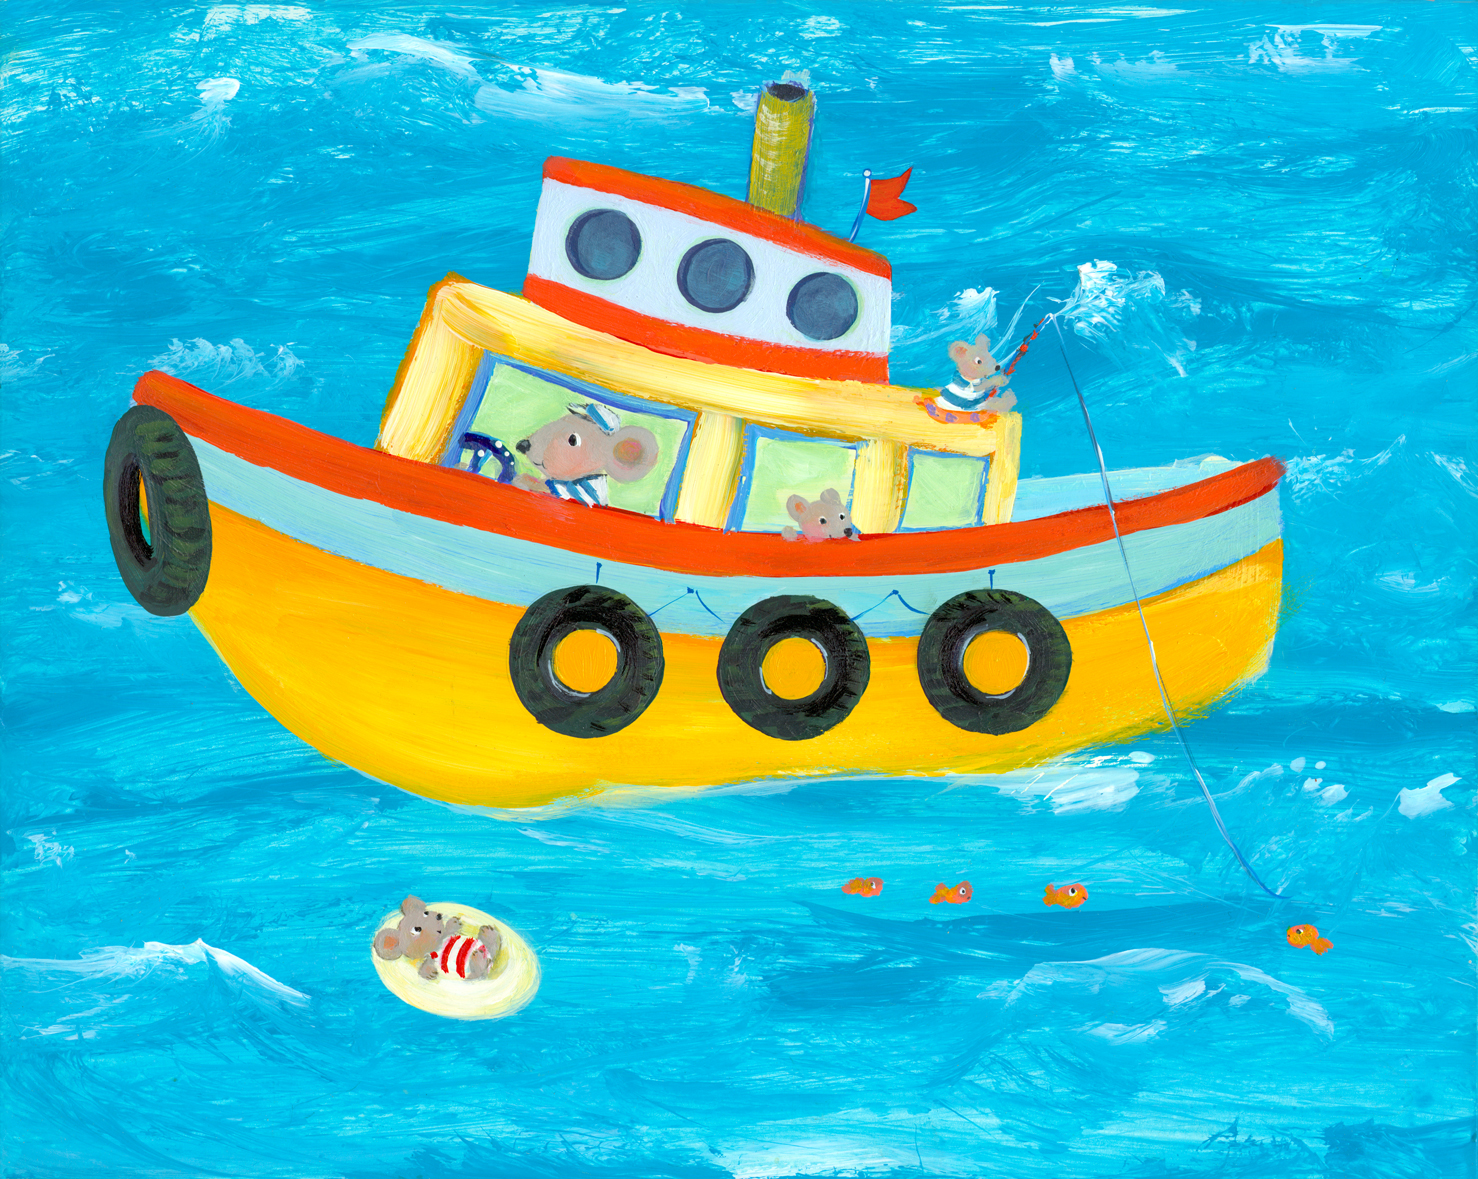 1tug_boat_mice_allyn_howard.jpg